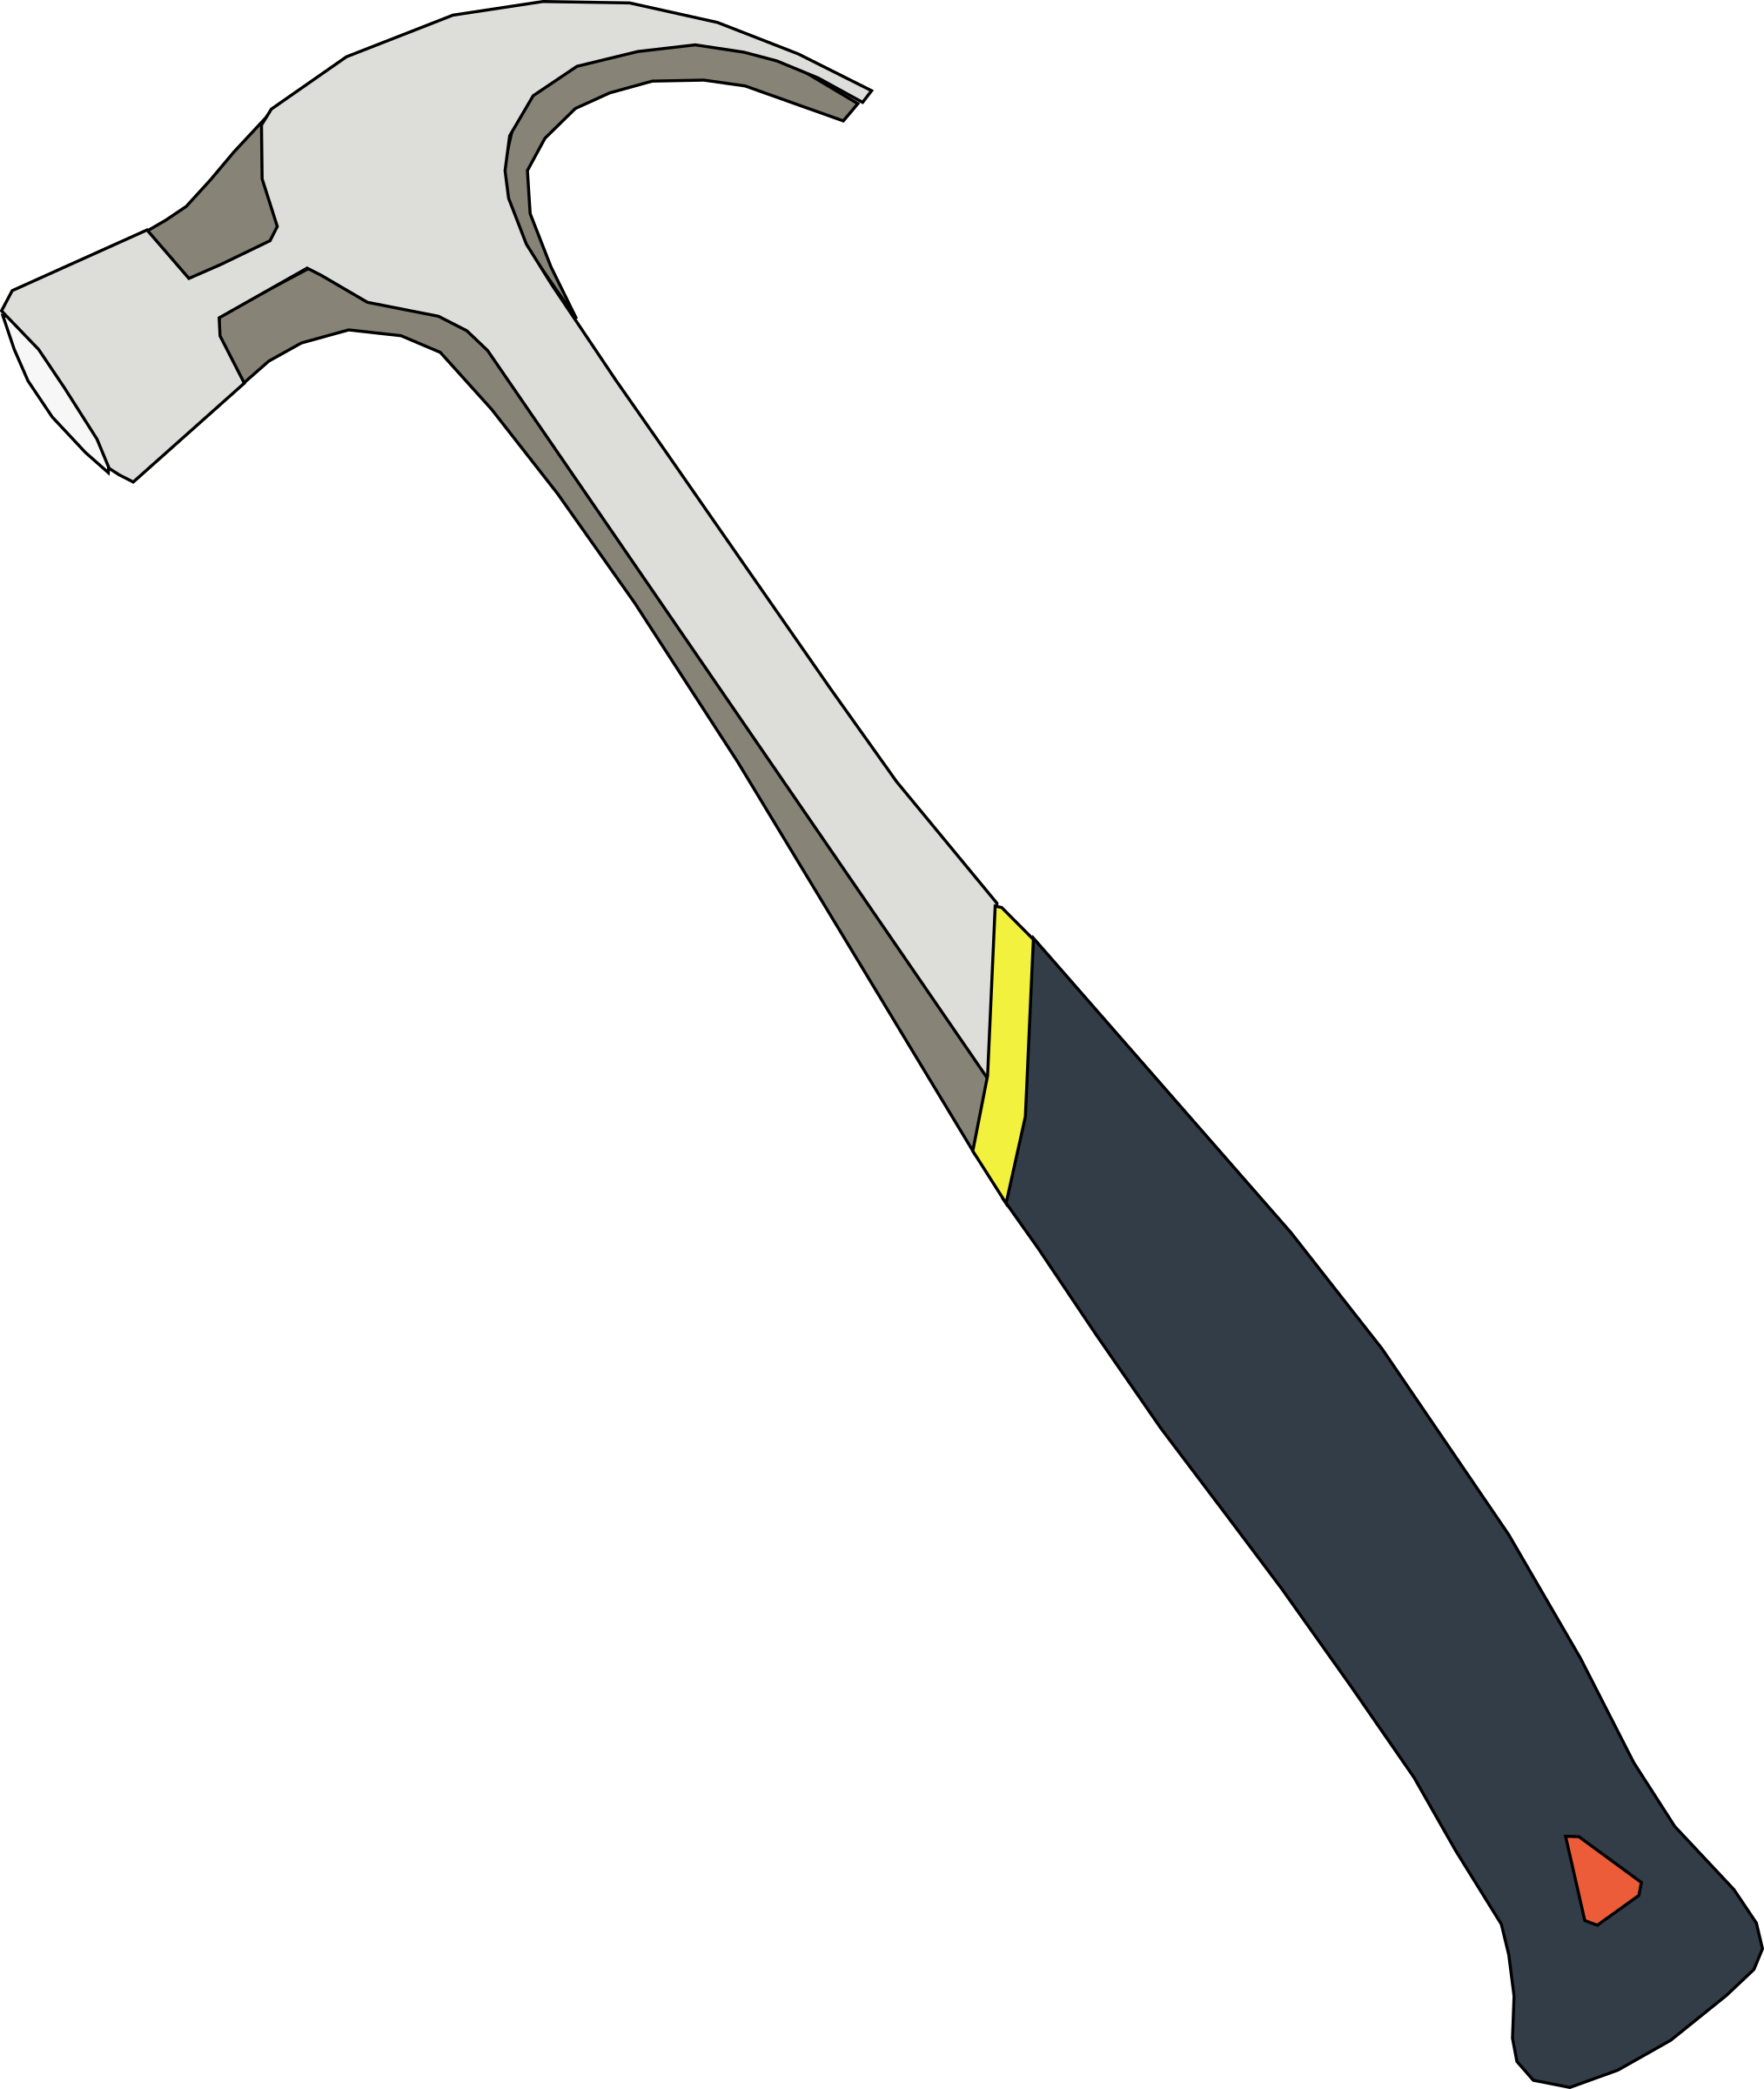 Icons png free and. Clipart hammer design technology tool